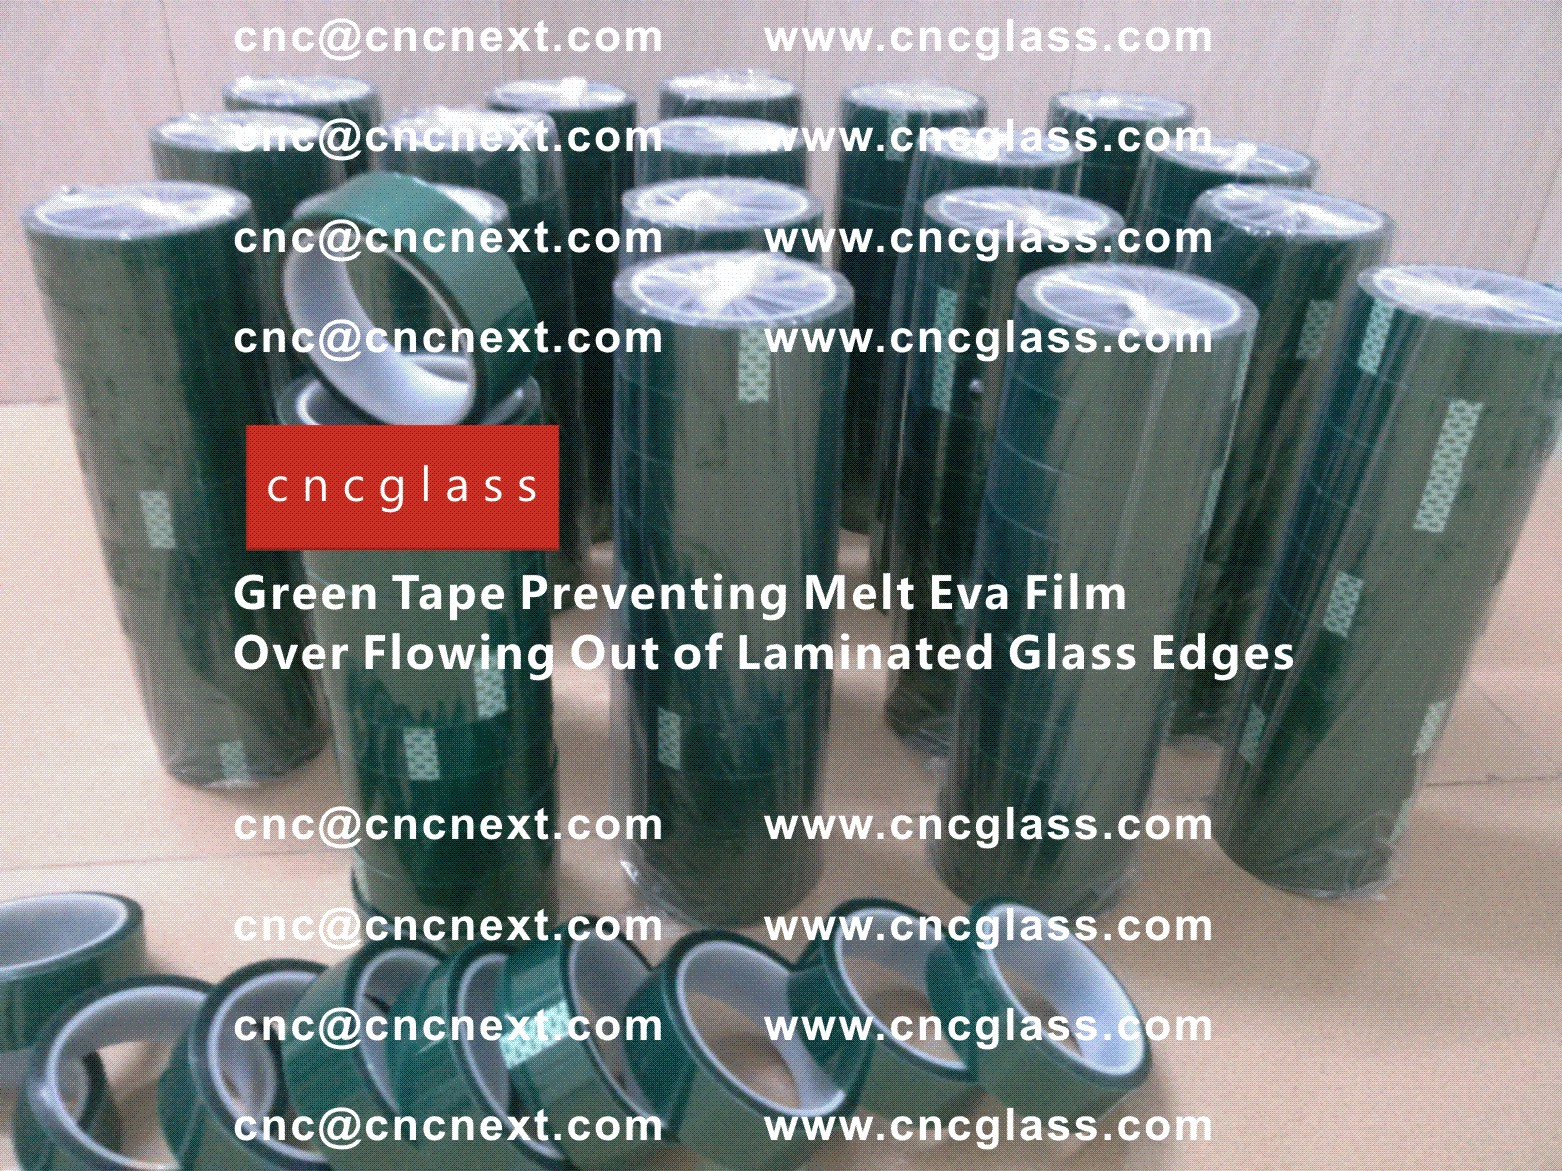 005 Green Tape Preventing Melt Eva Film Over Flowing Out of Laminated Glass Edges